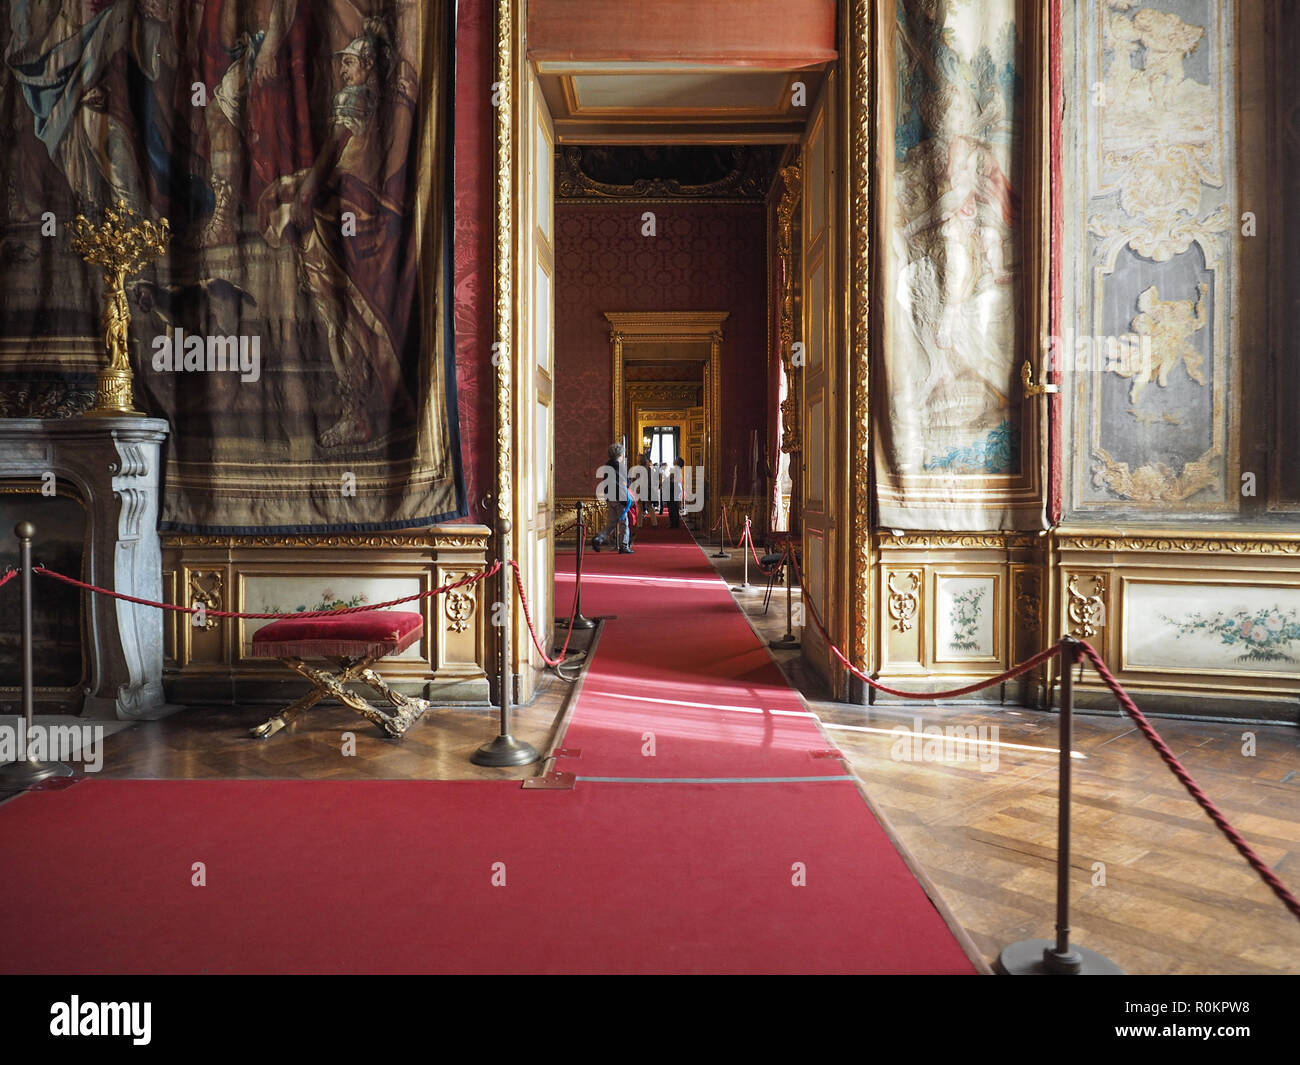 TURIN, ITALY - CIRCA OCTOBER 2018: Palazzo Reale (meaning